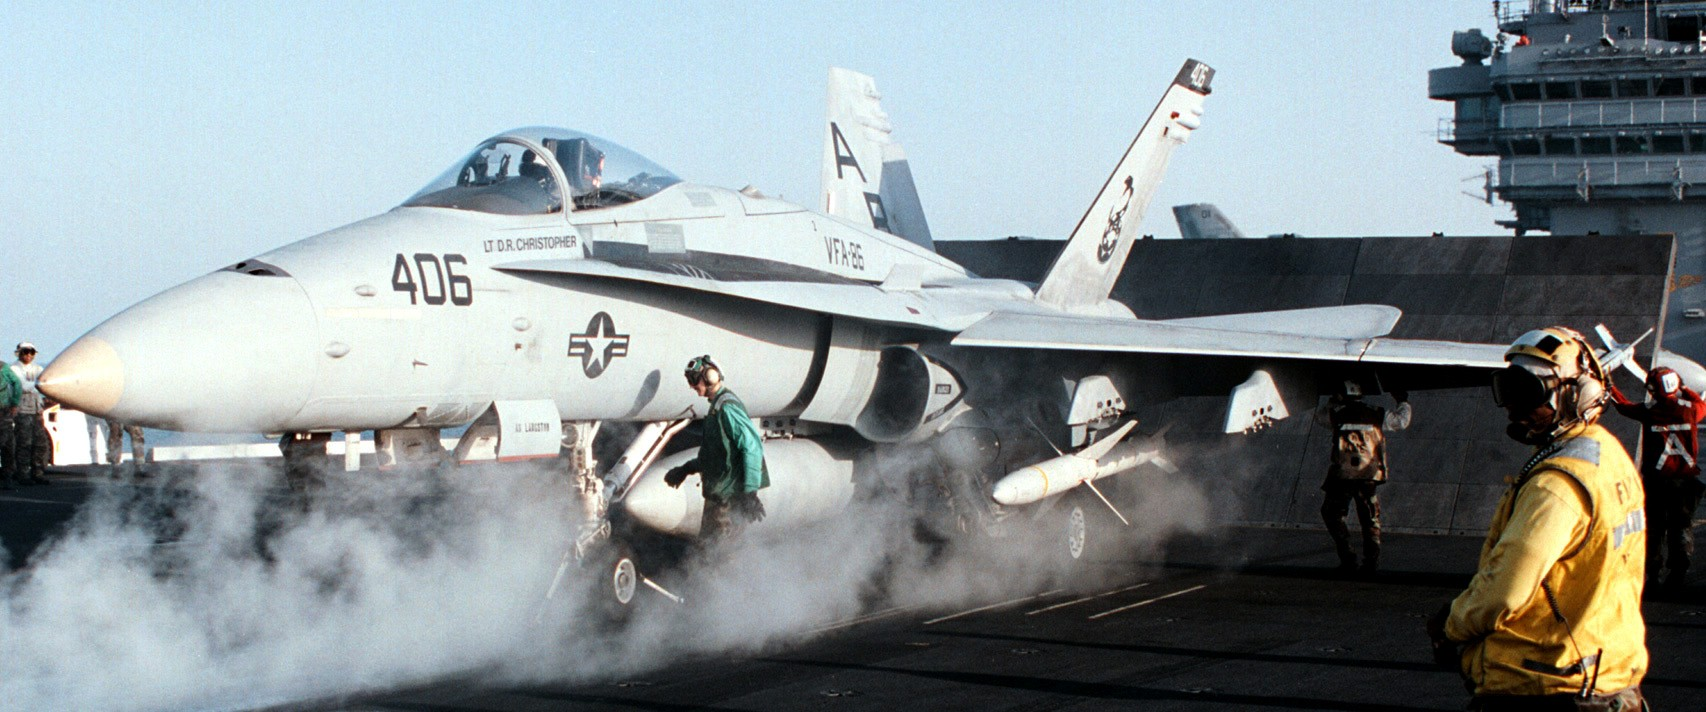 VFA-86 Sidewinders Strike Fighter Squadron US Navy